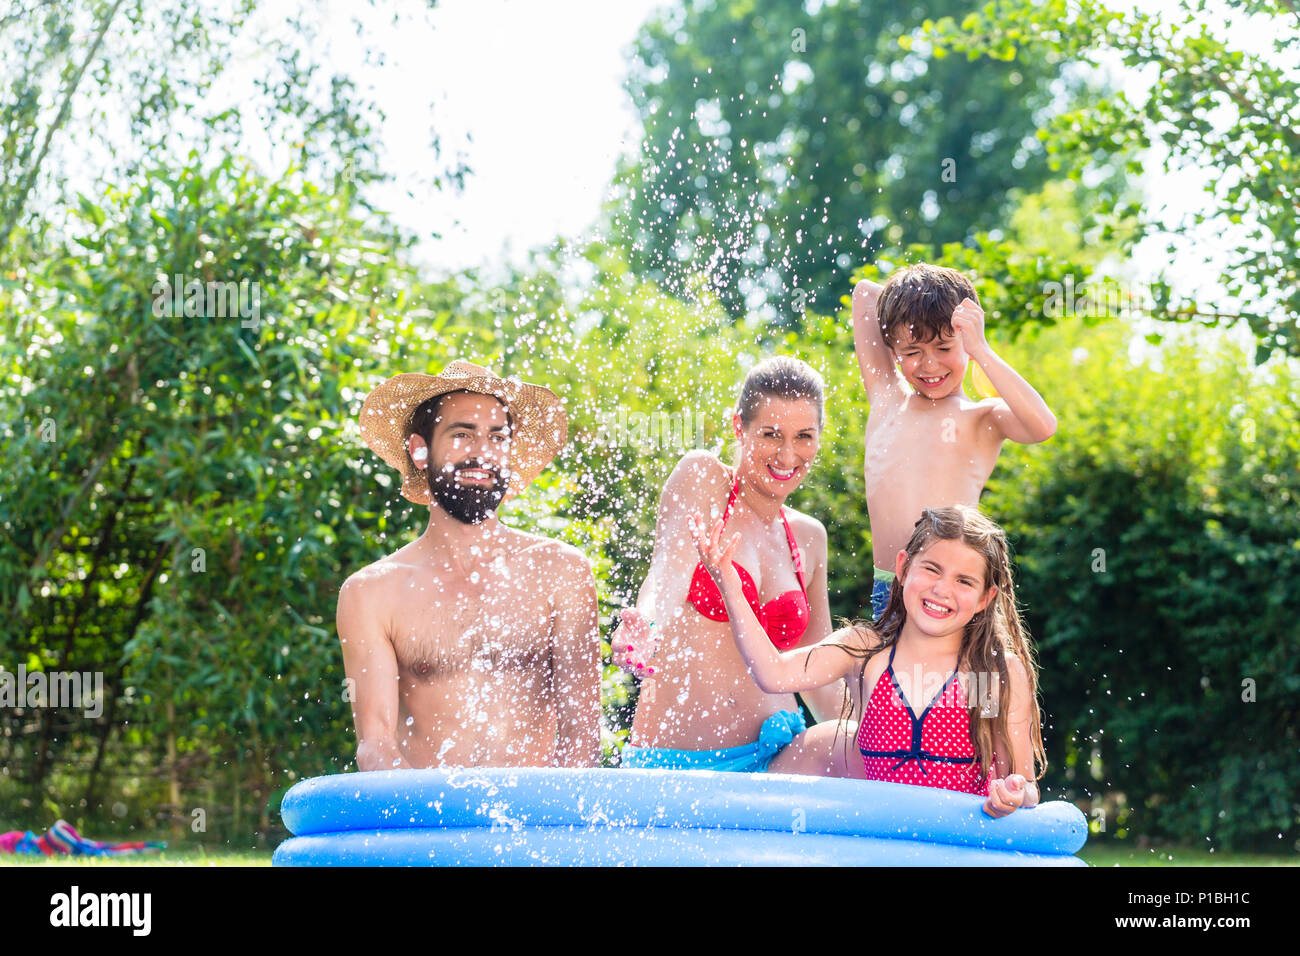 Family cooling down splashing water in garden pool  - Stock Image